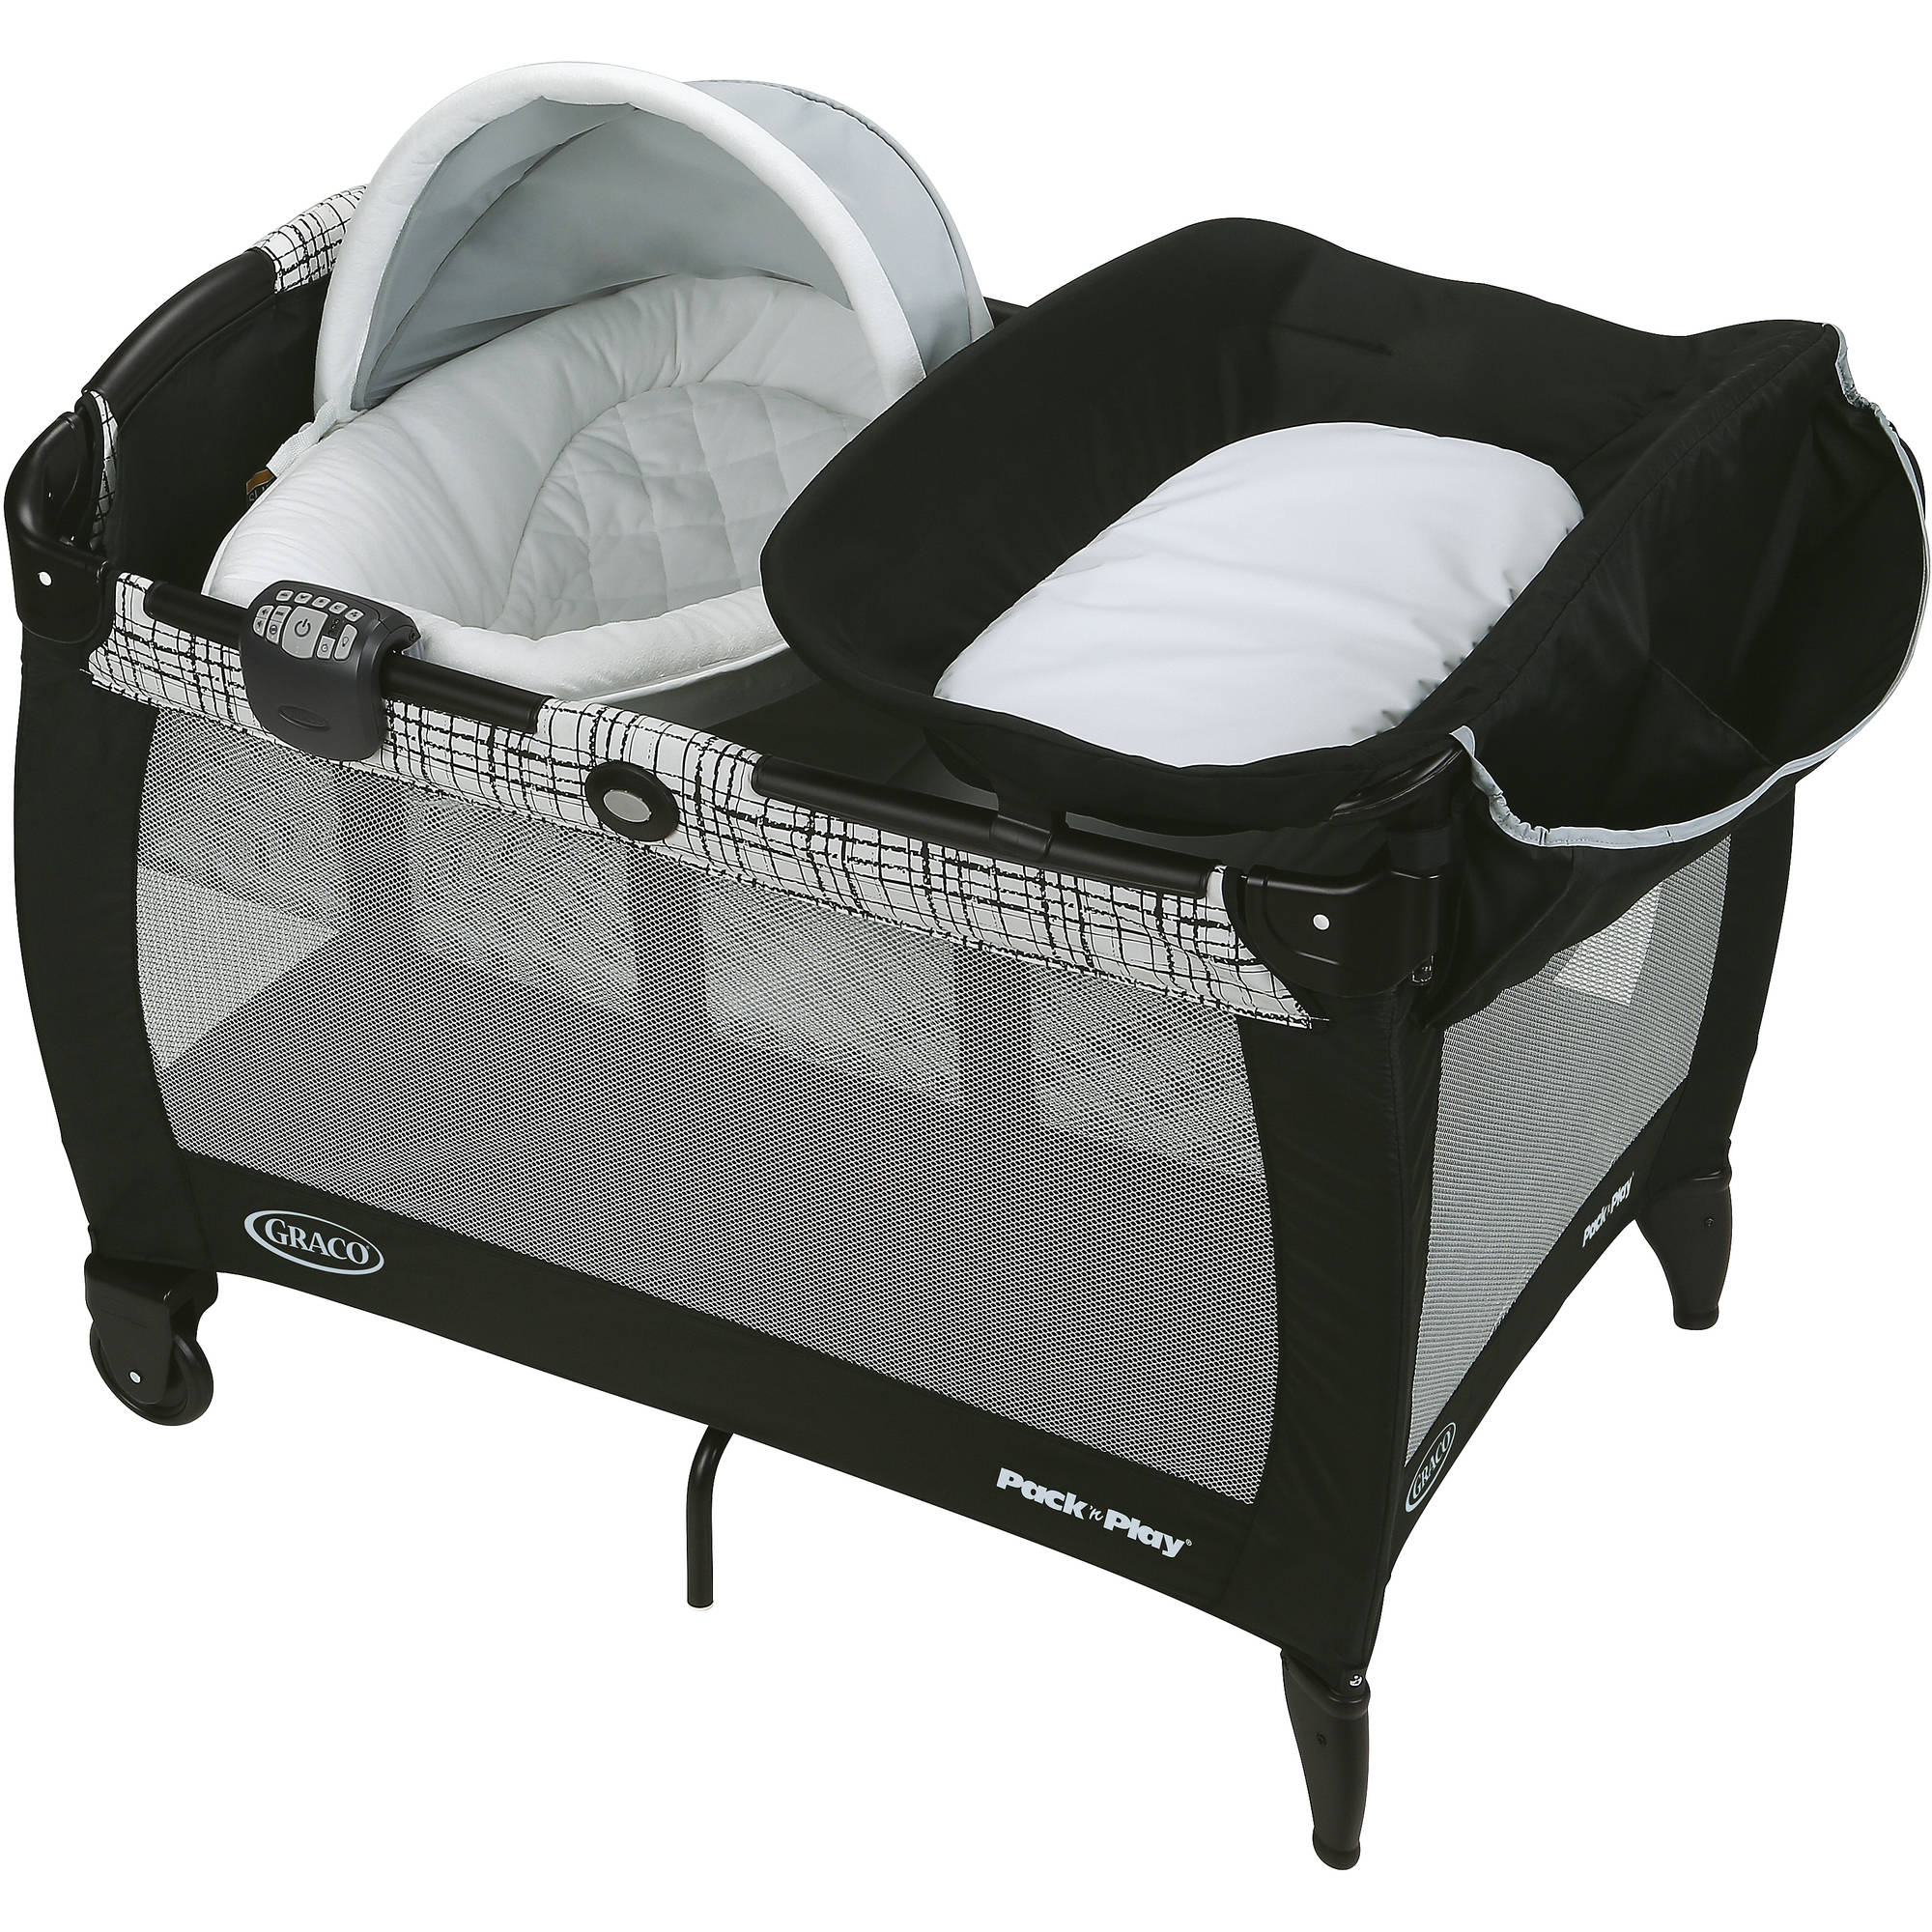 Graco Pack 'n Play Newborn Napper Play Pen with Soothe Surround Technology Bassinet, Teigen by Graco